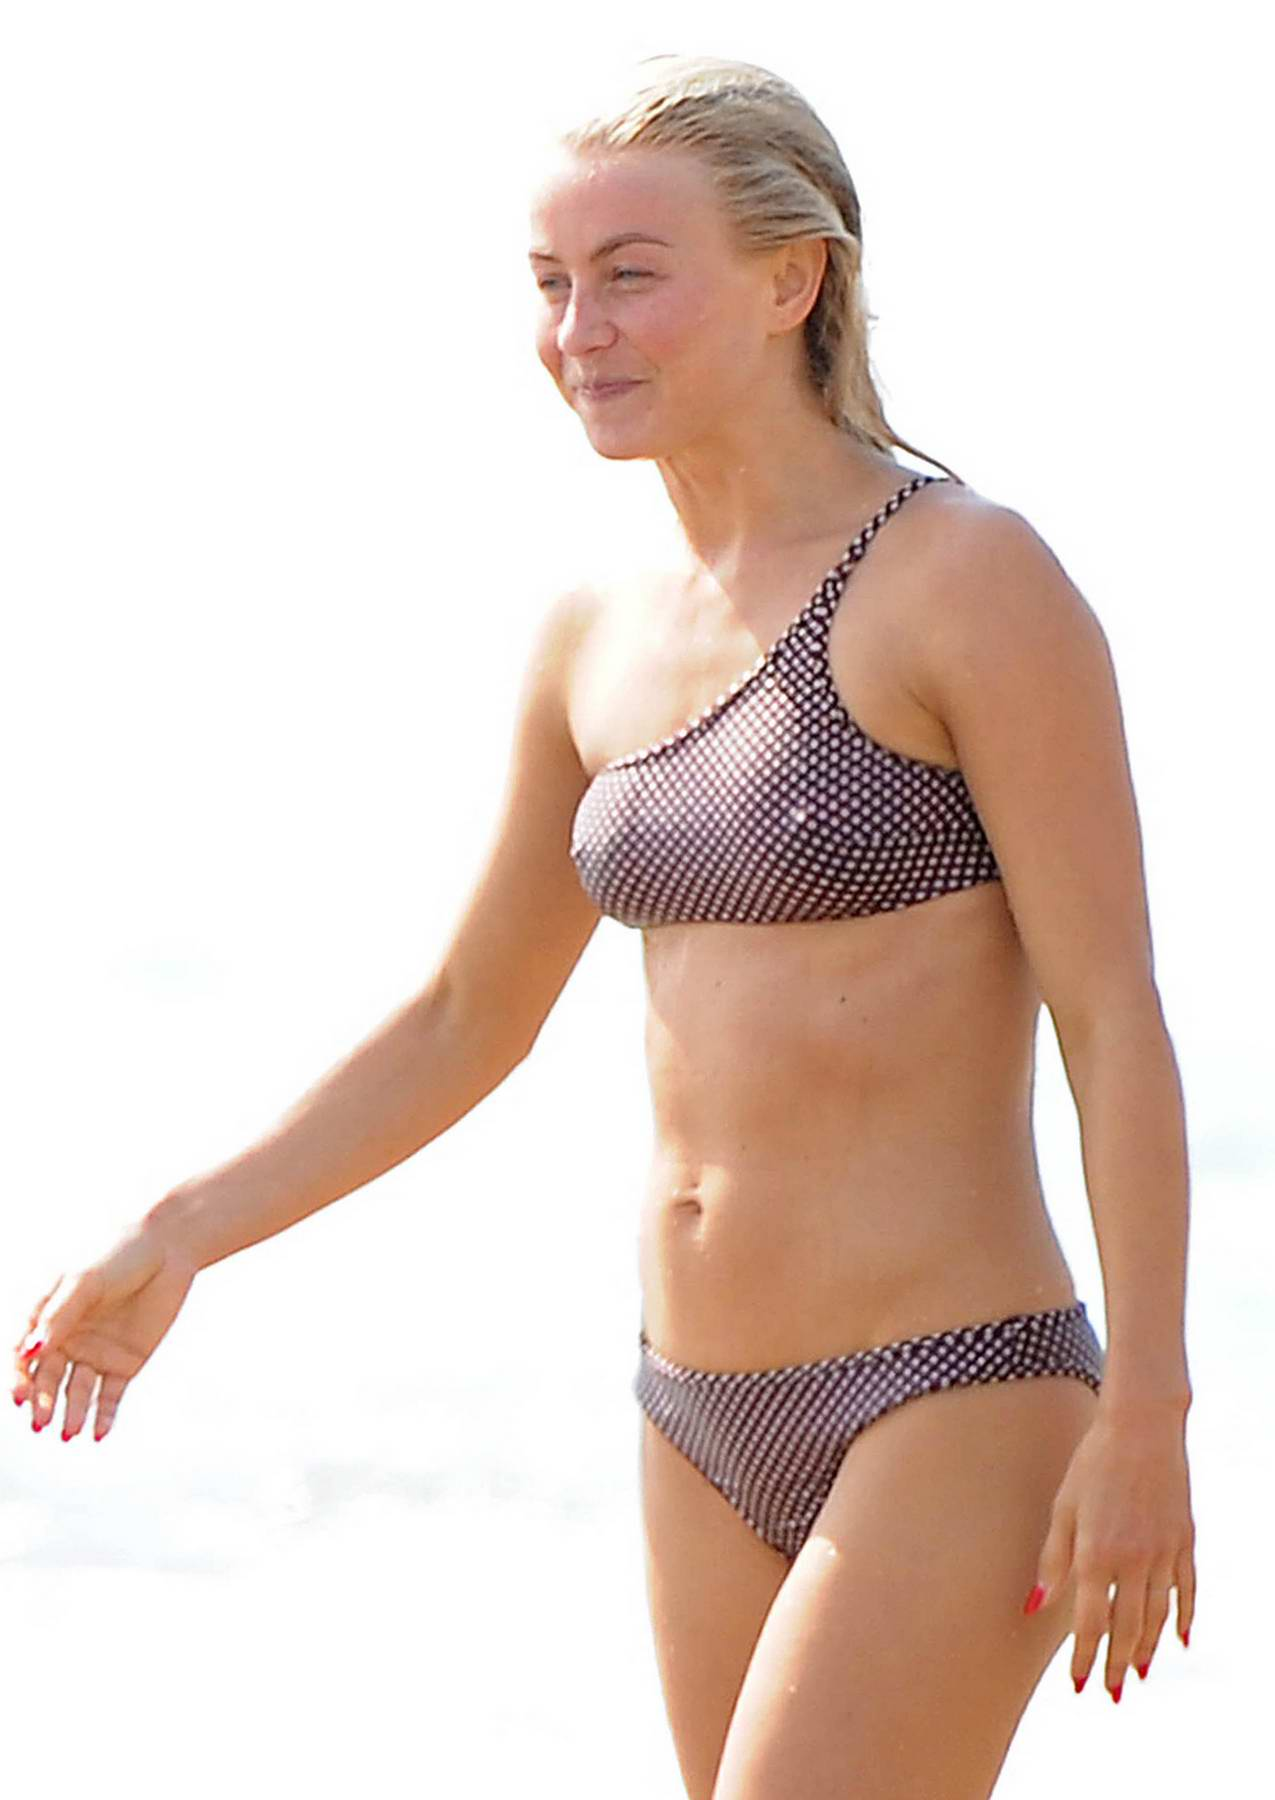 Julianne Hough in a bikini while body-surfing with husband Brooks Laich at the beach in Manhattan Beach, California